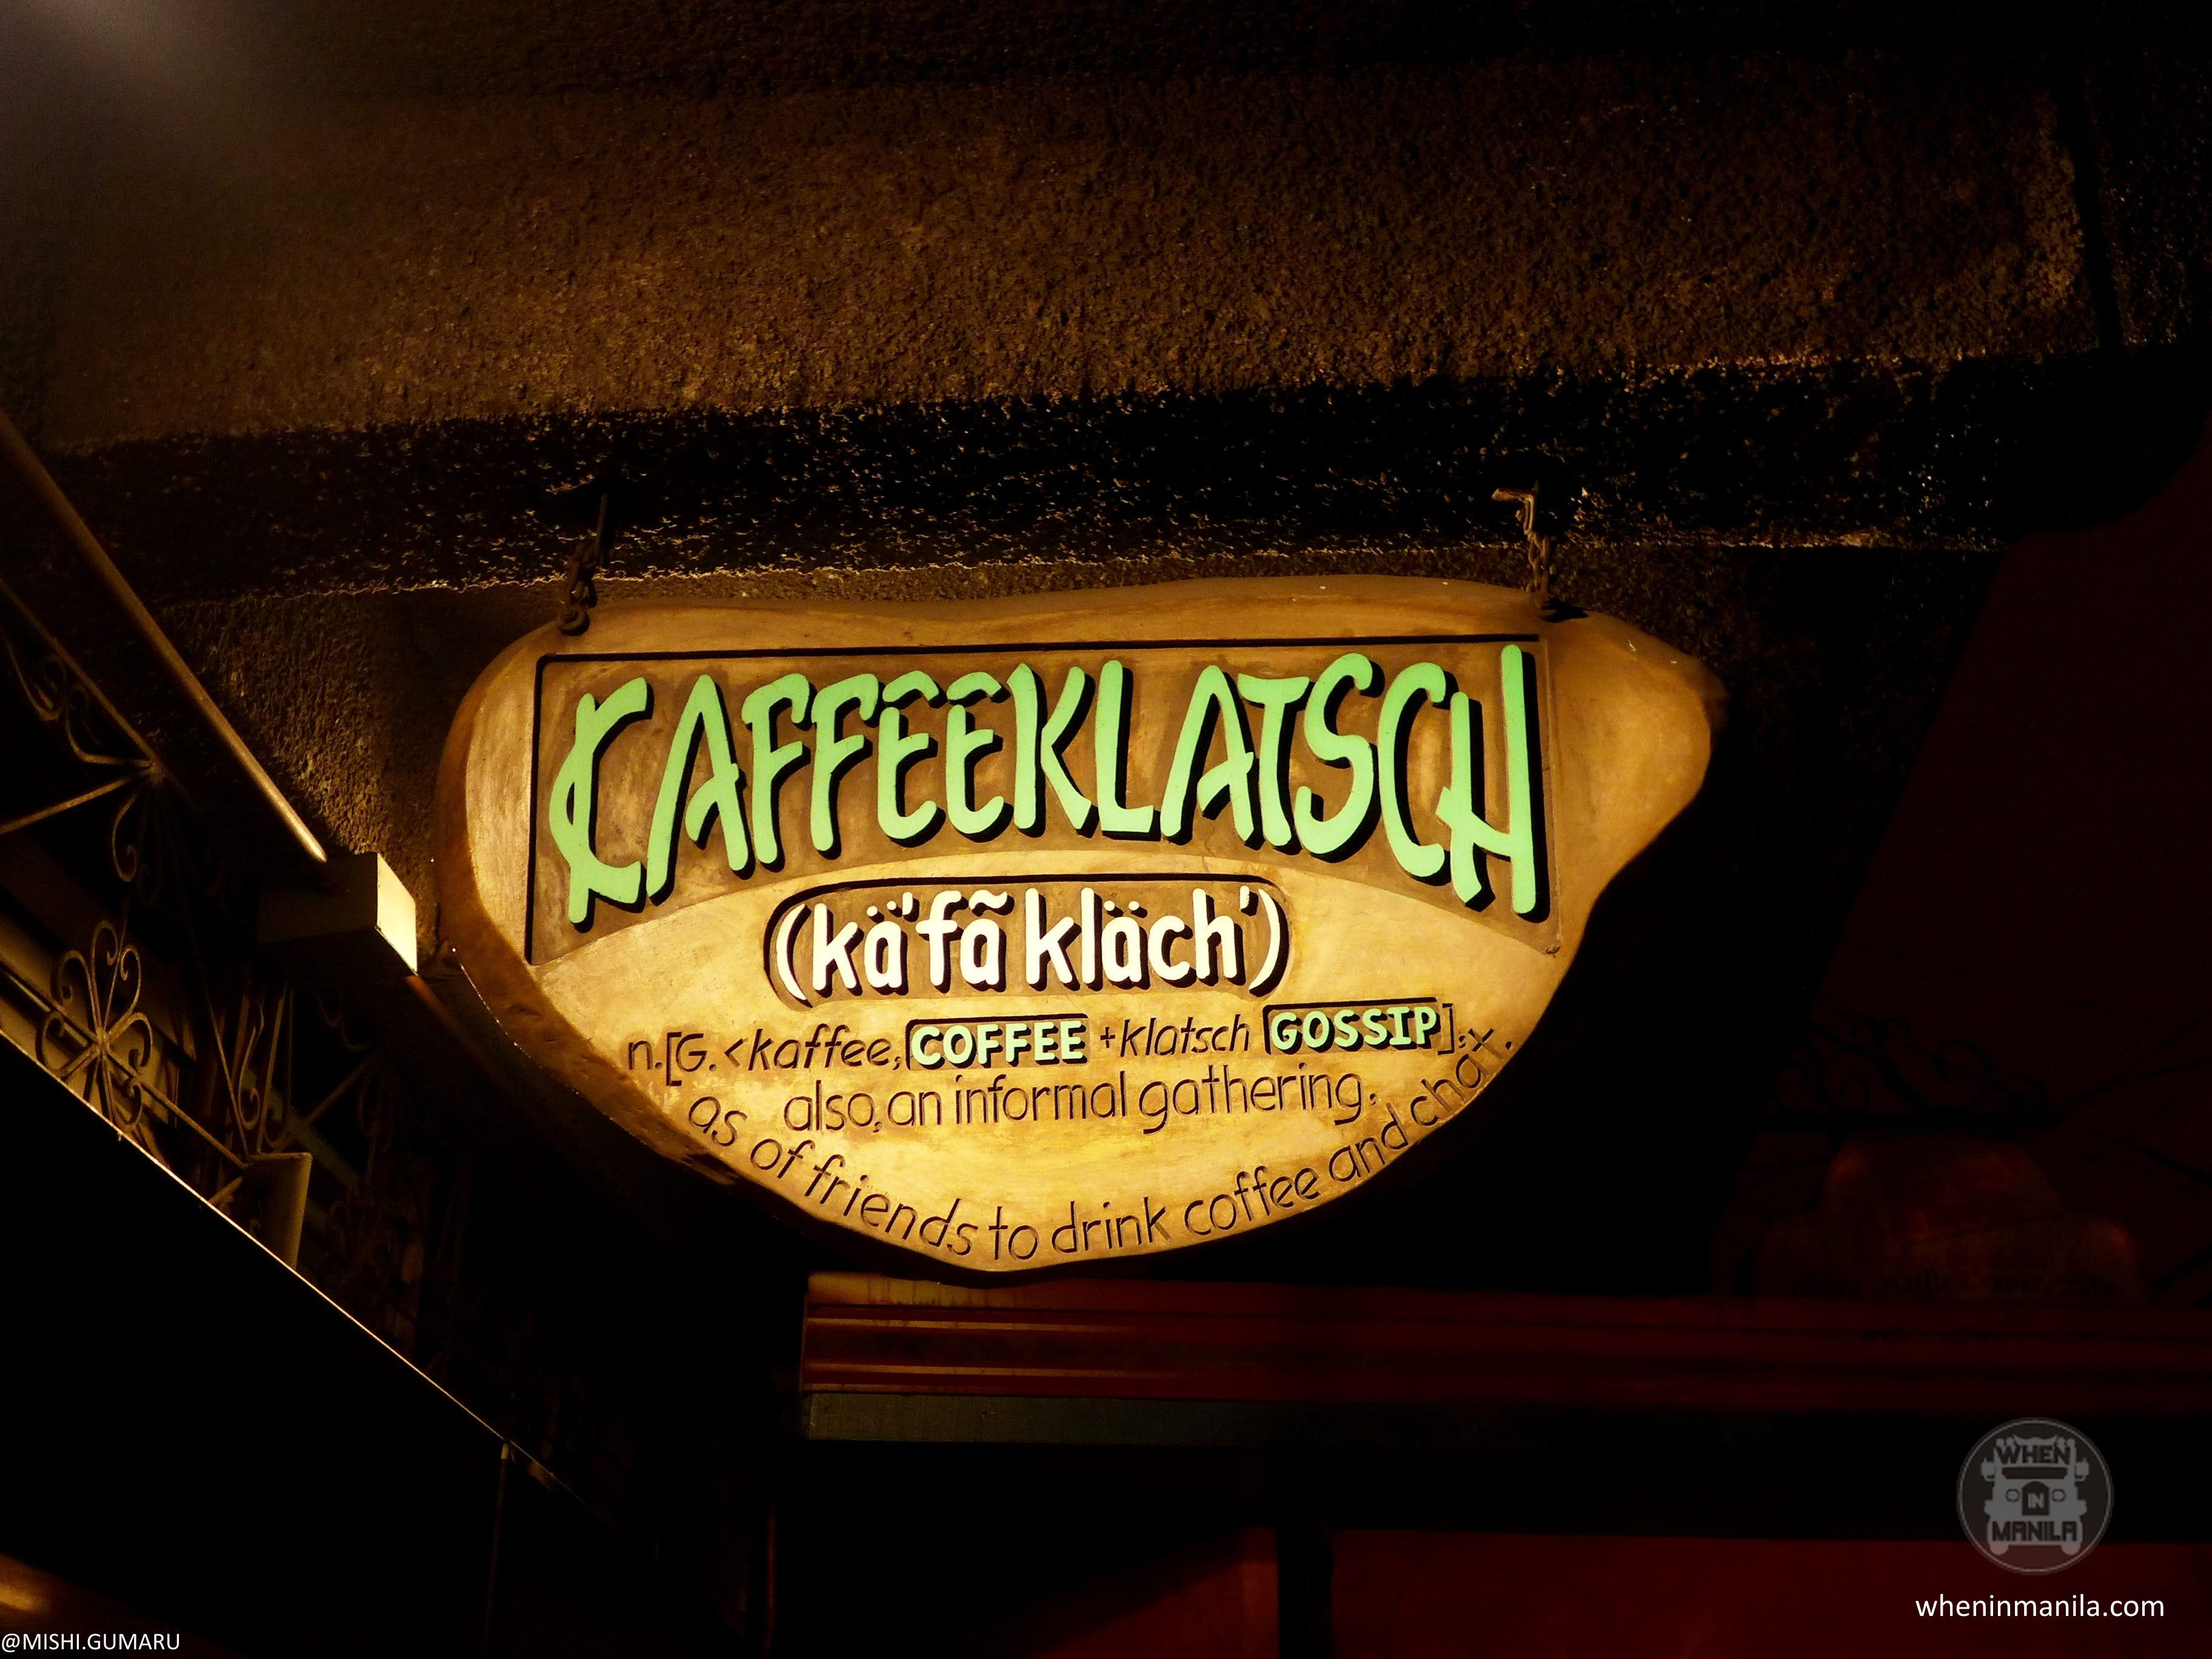 5-Cool-And-Quirky-Cafes-You-Must-Check-Out-When-In-Baguio25